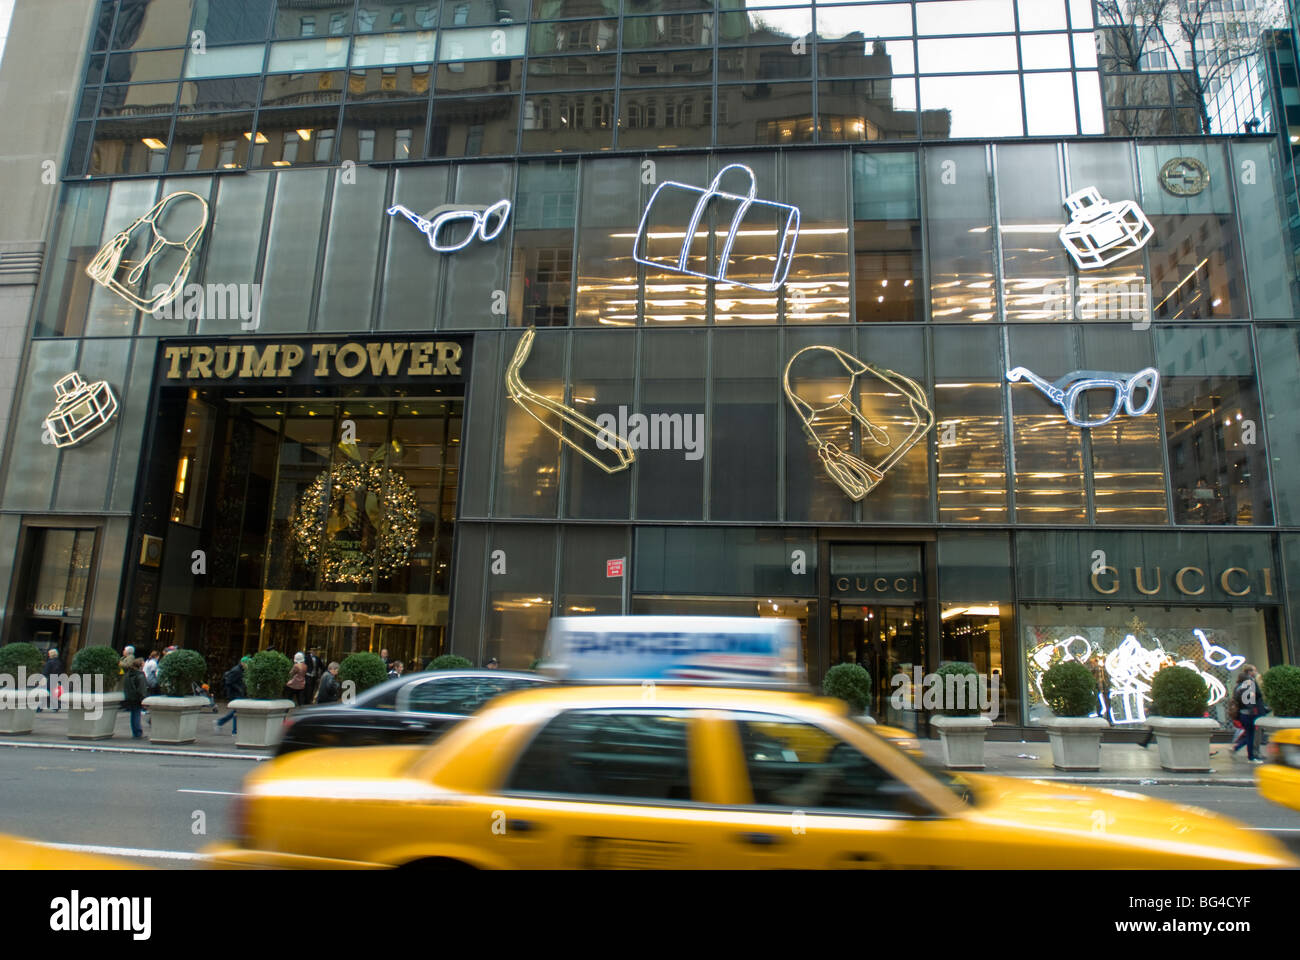 the gucci store on fifth avenue in the trump tower in new. Black Bedroom Furniture Sets. Home Design Ideas